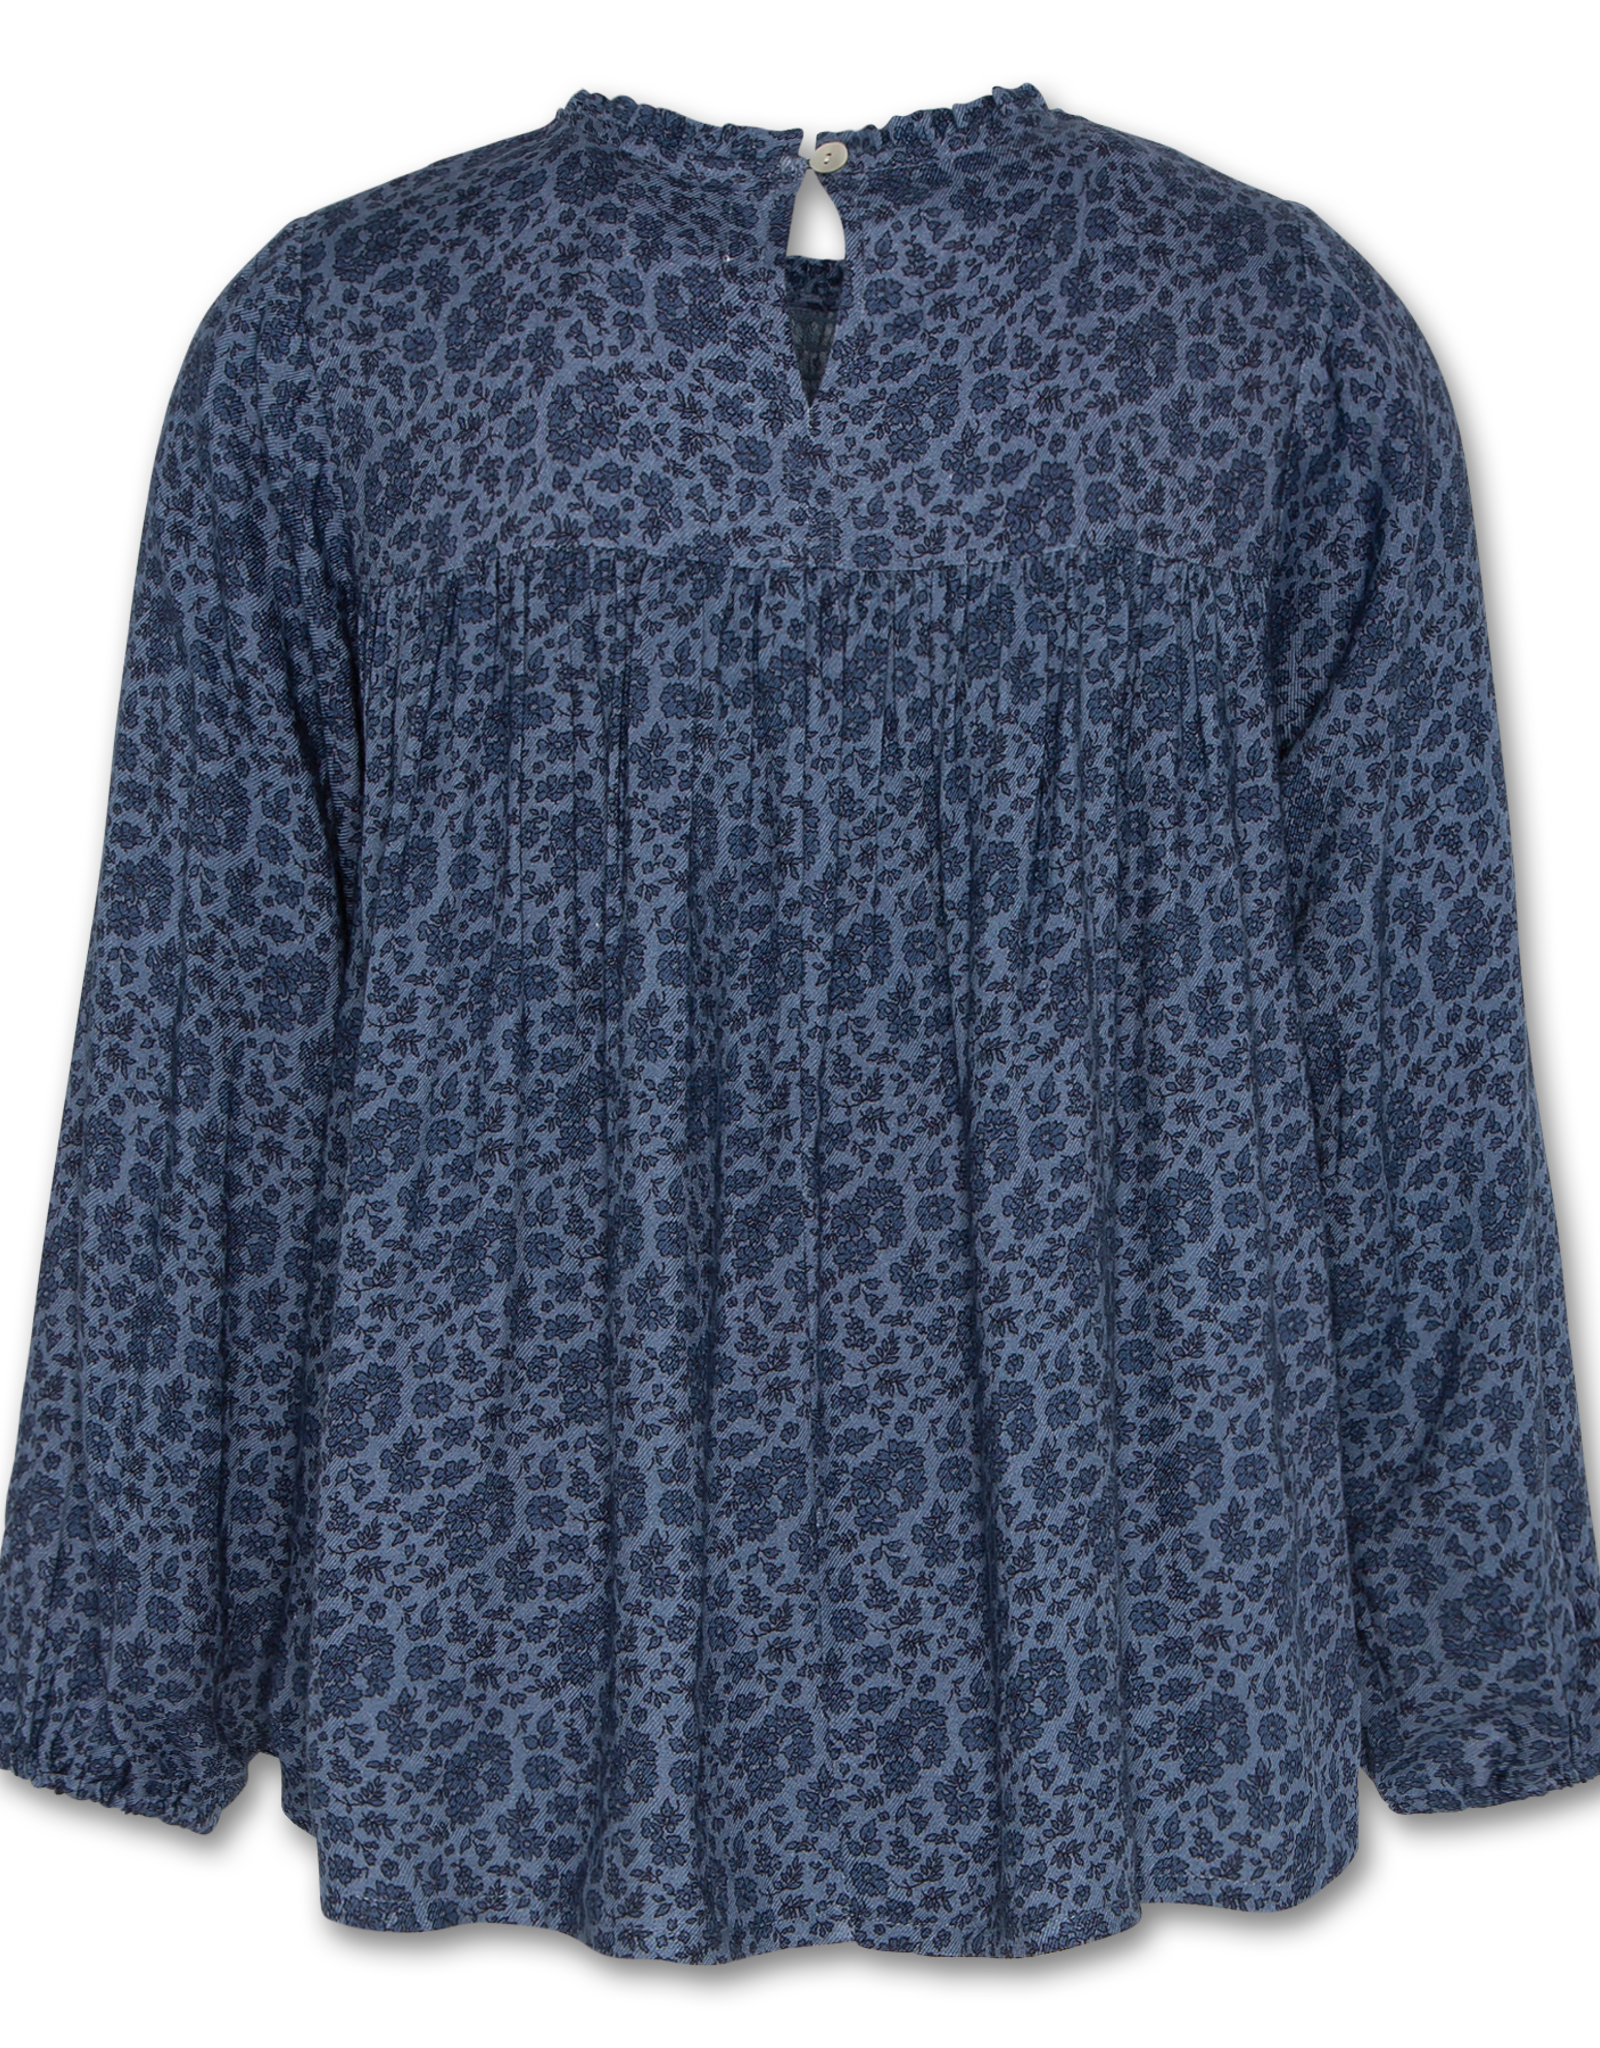 AMERICAN OUTFITTERS AO76 lily shirt blue